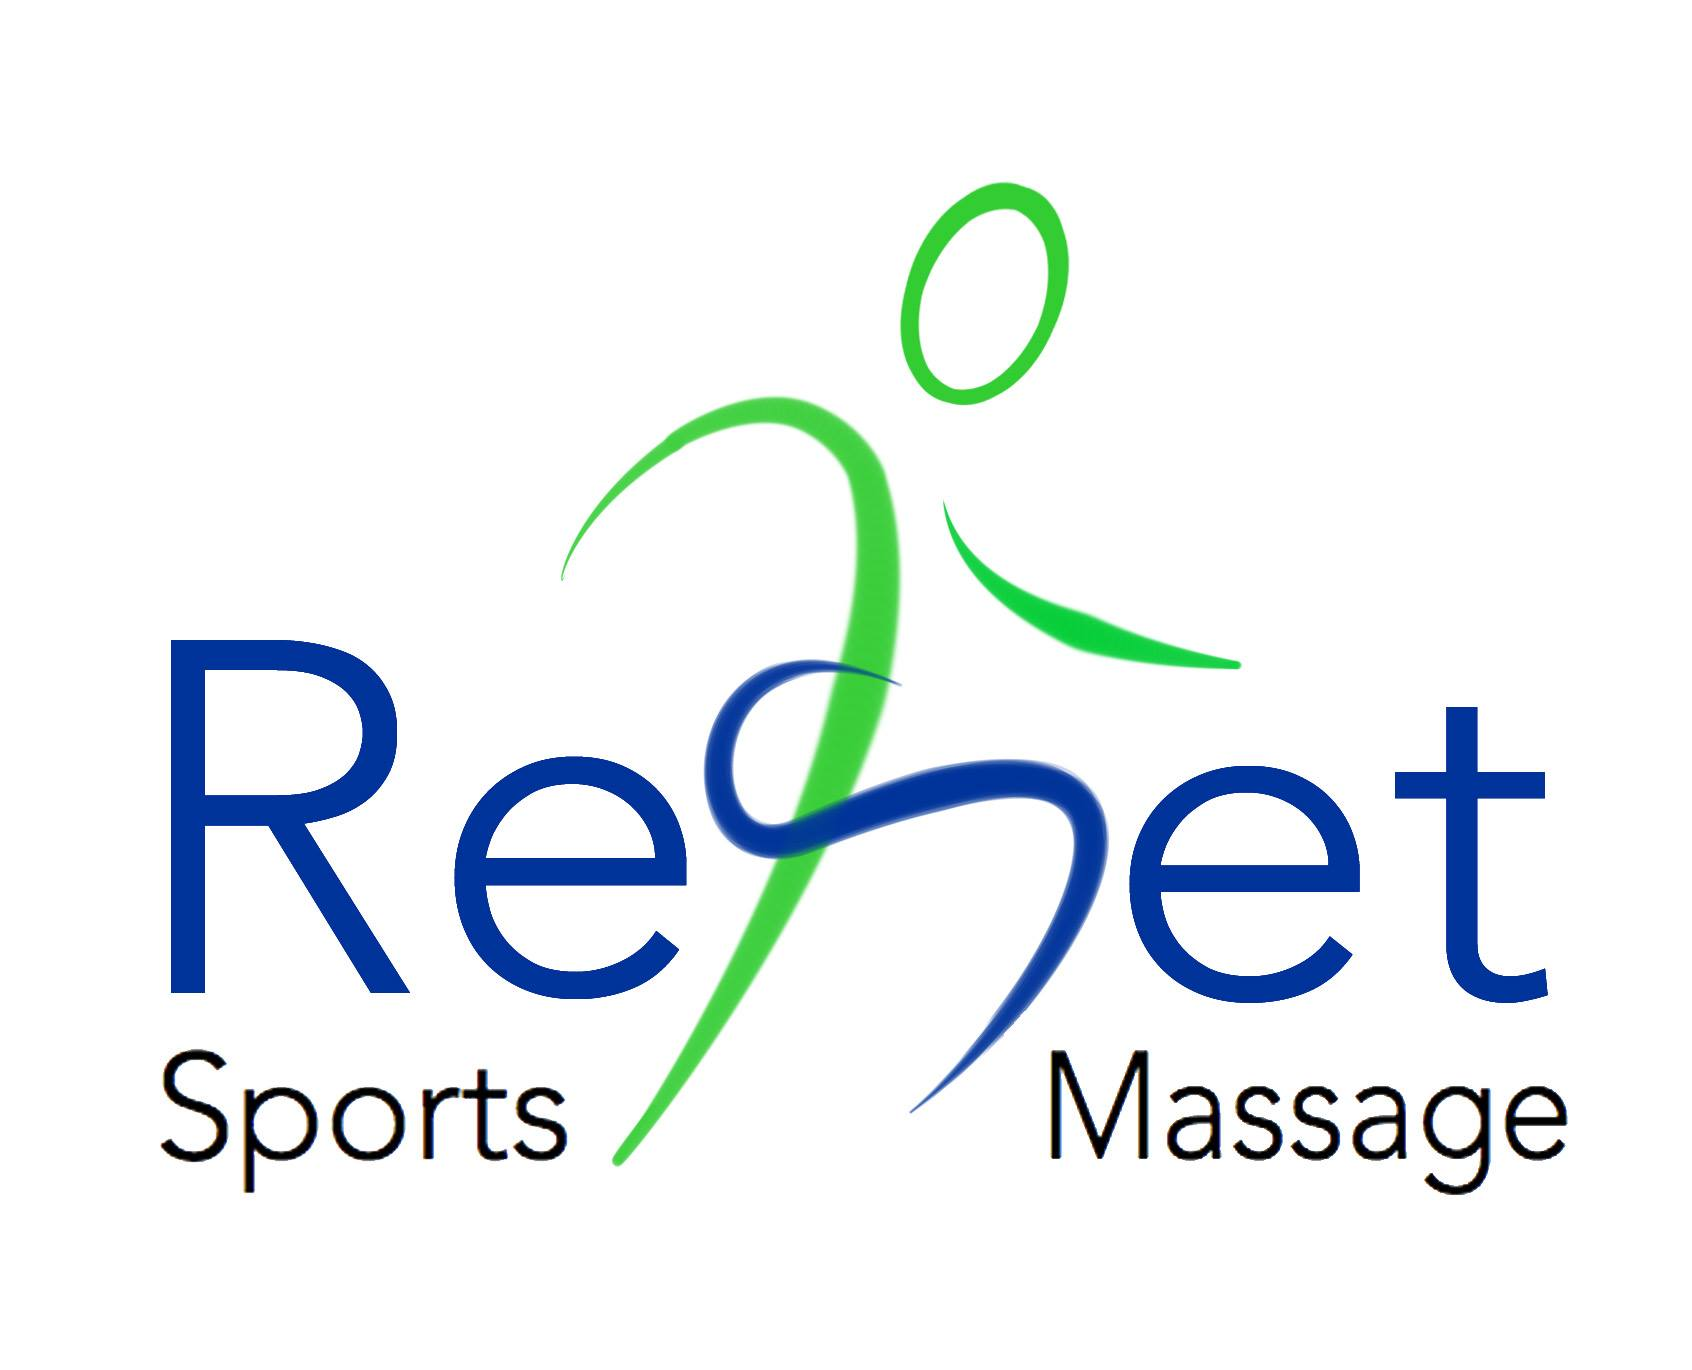 Reset Sports Massage